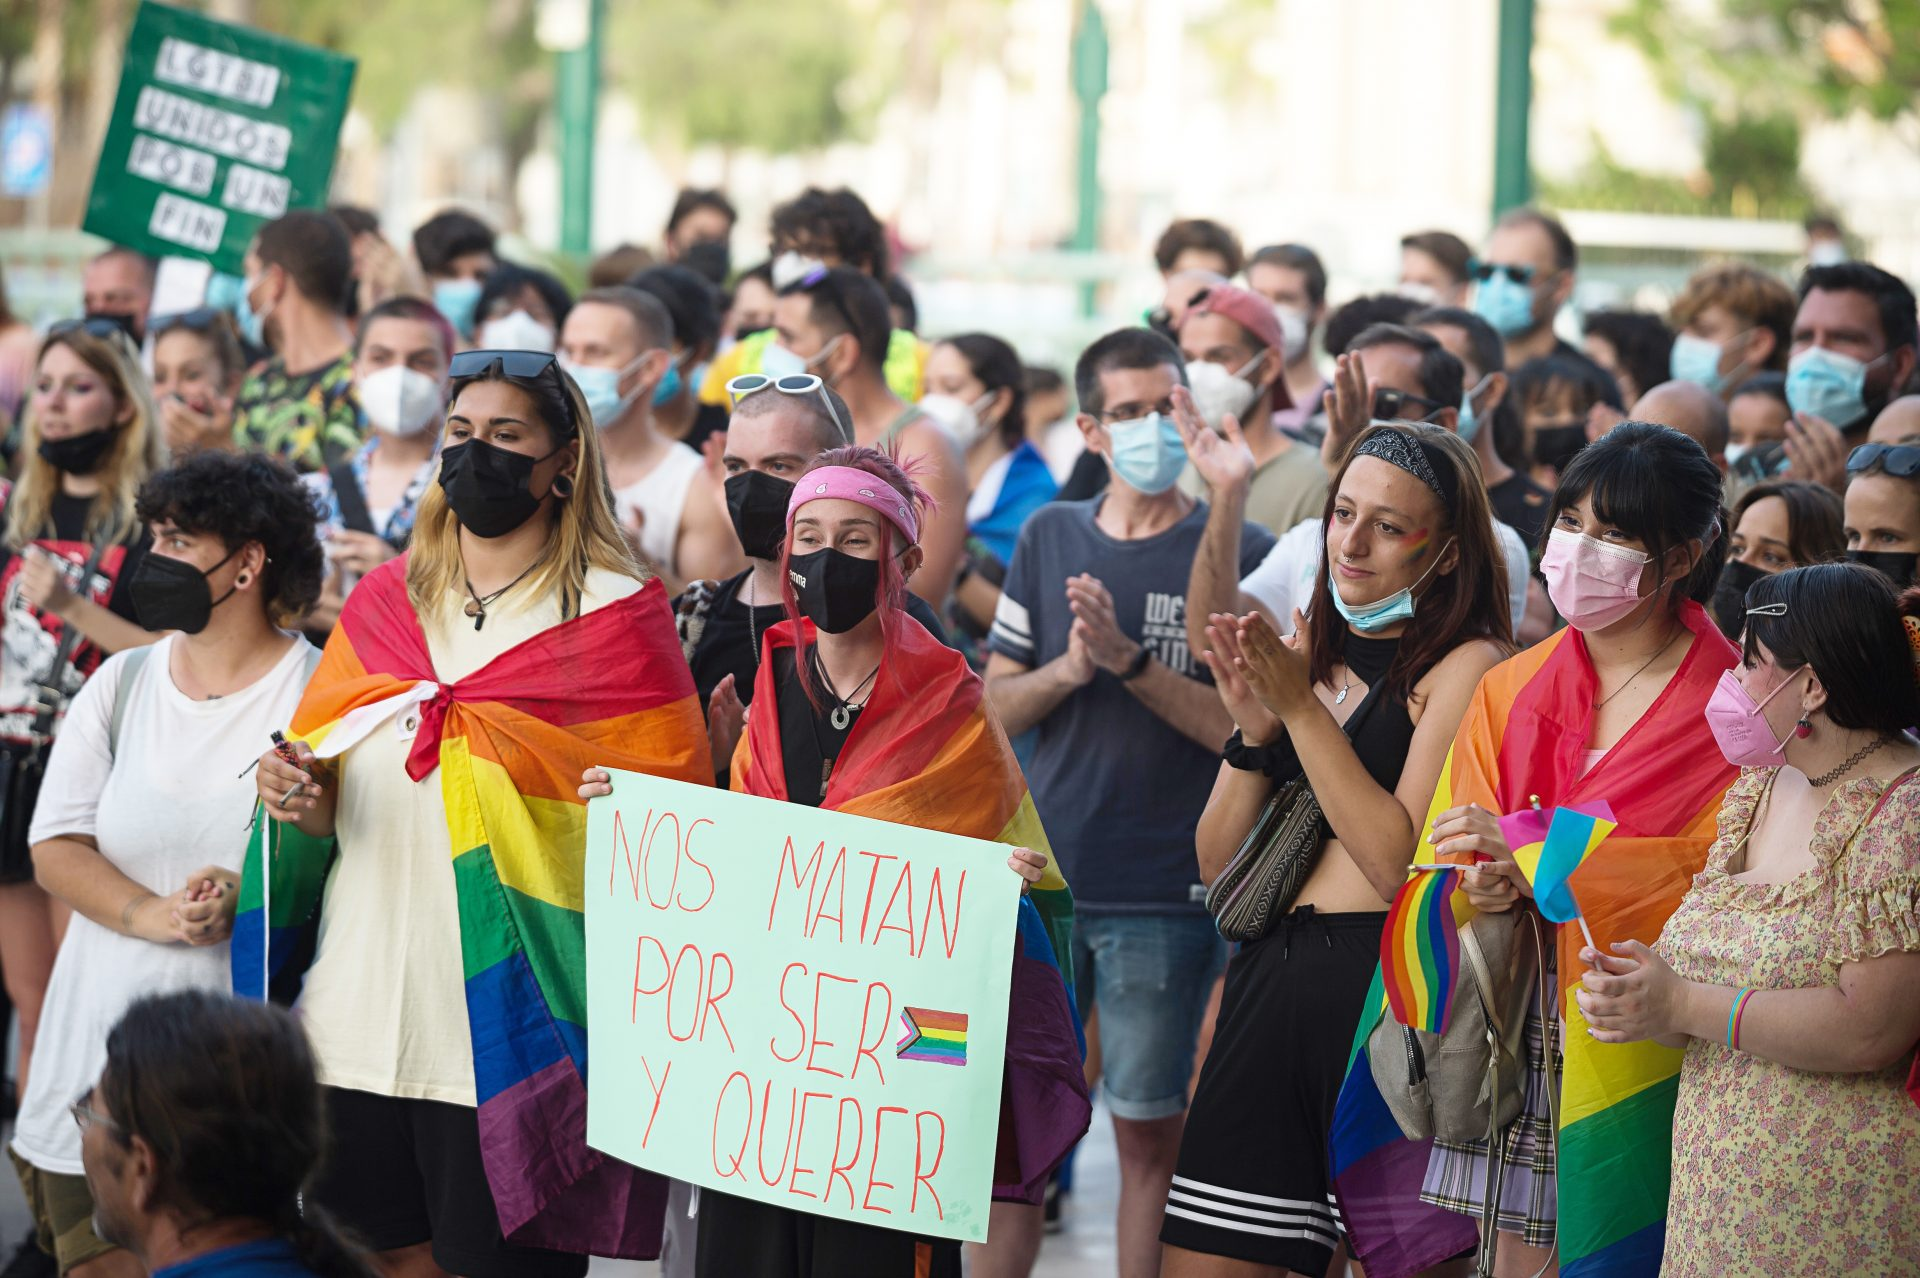 Protesters are seen wrapped in rainbow flags take part in a protest against homophobia and transphobia at Plaza de la Marina square after the homophobic murder of Spanish 24 year-old Samuel Luiz. (Photo by Jesus Merida/SOPA Images/LightRocket via Getty Images)